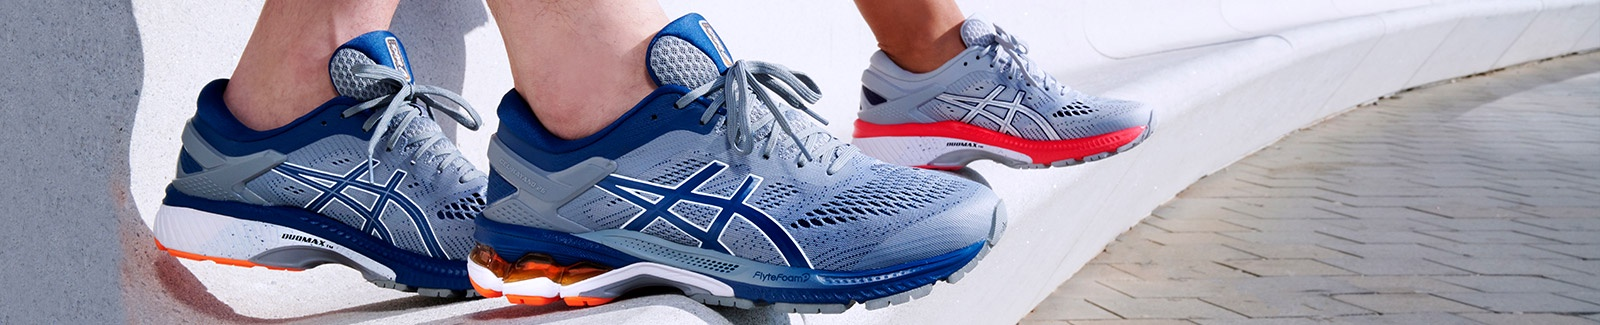 GEL-Kayano® 26 Footer